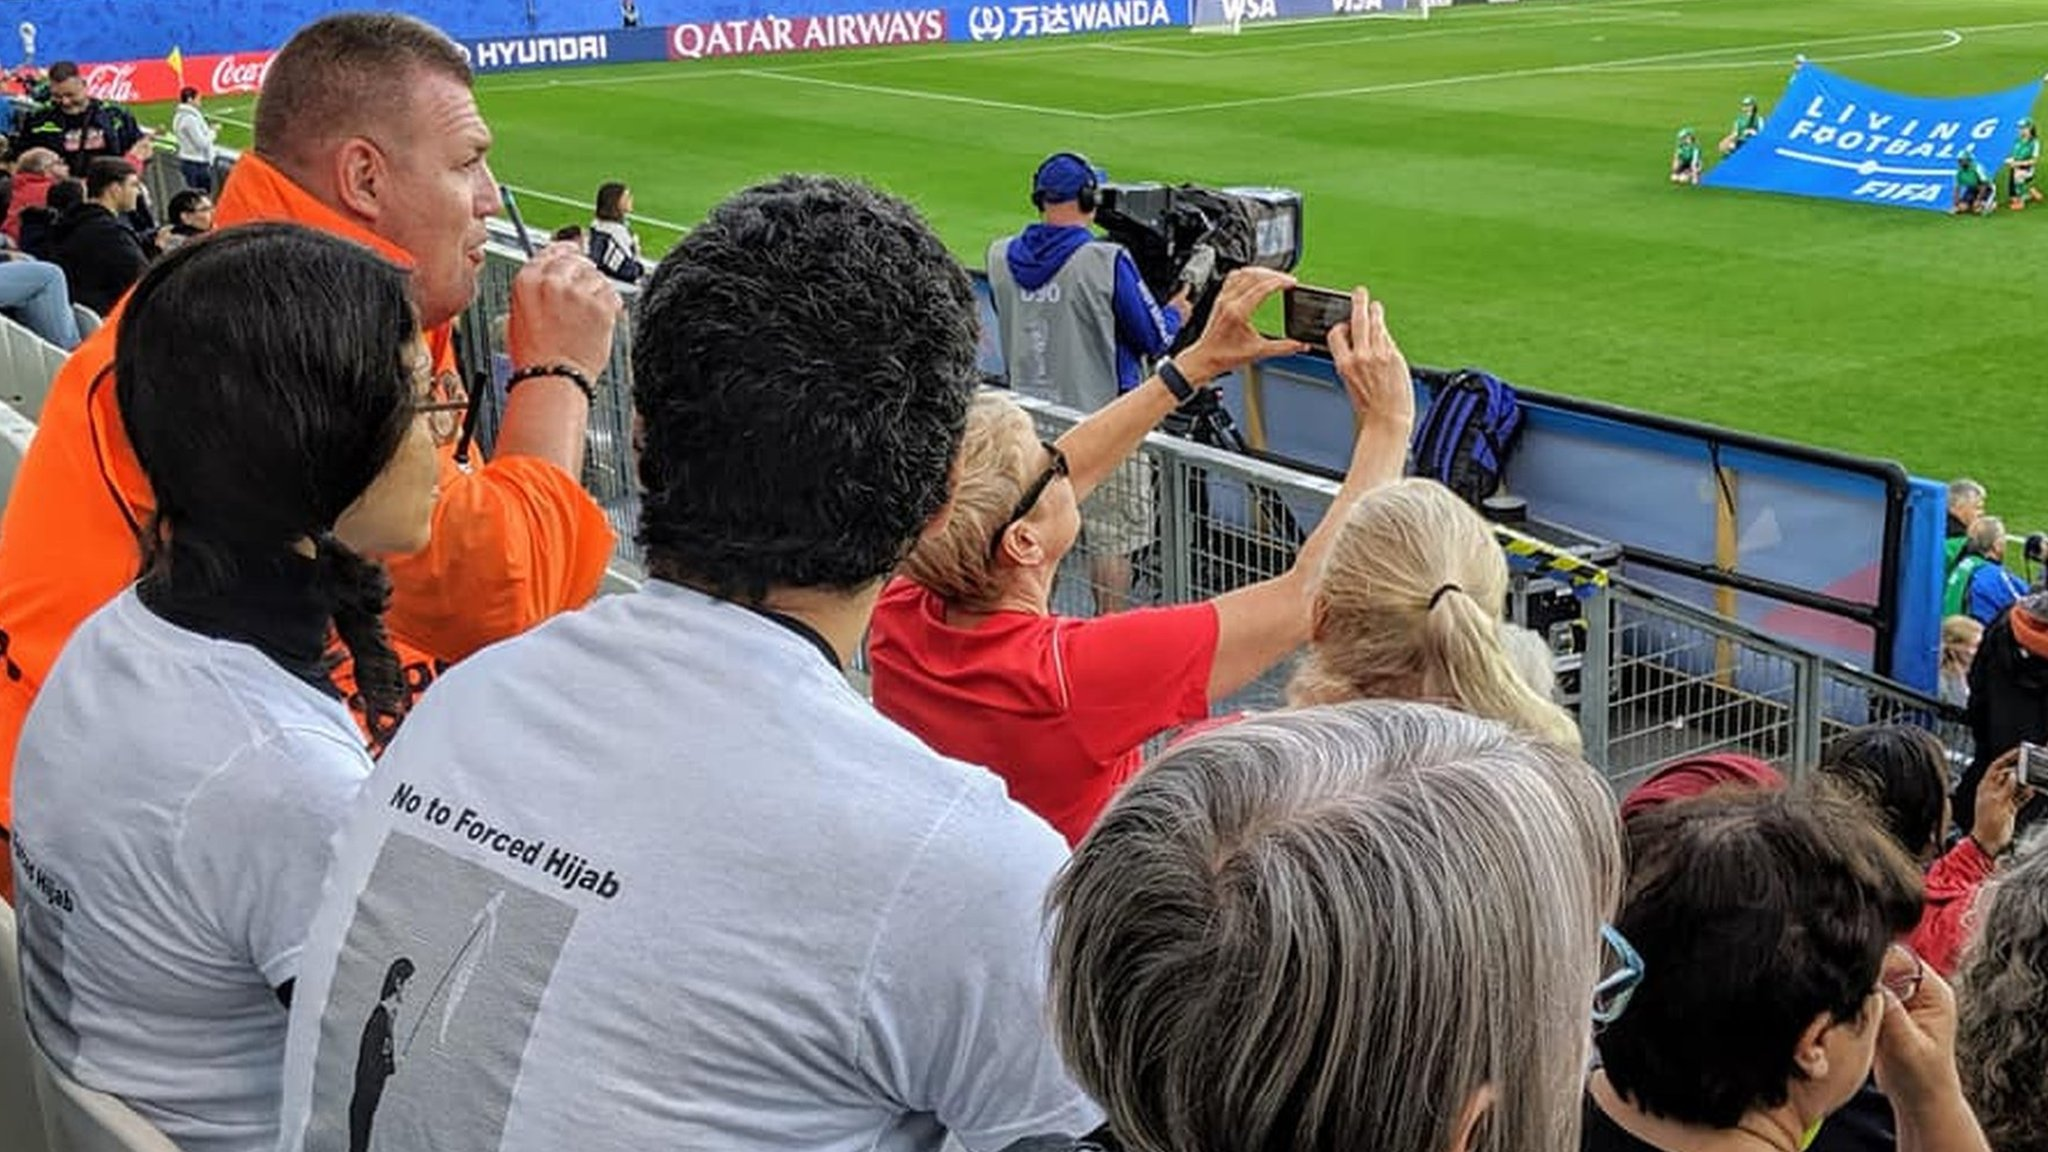 Women's World Cup: Fifa says it was wrong to remove fans for wearing Iran slogan T-shirts